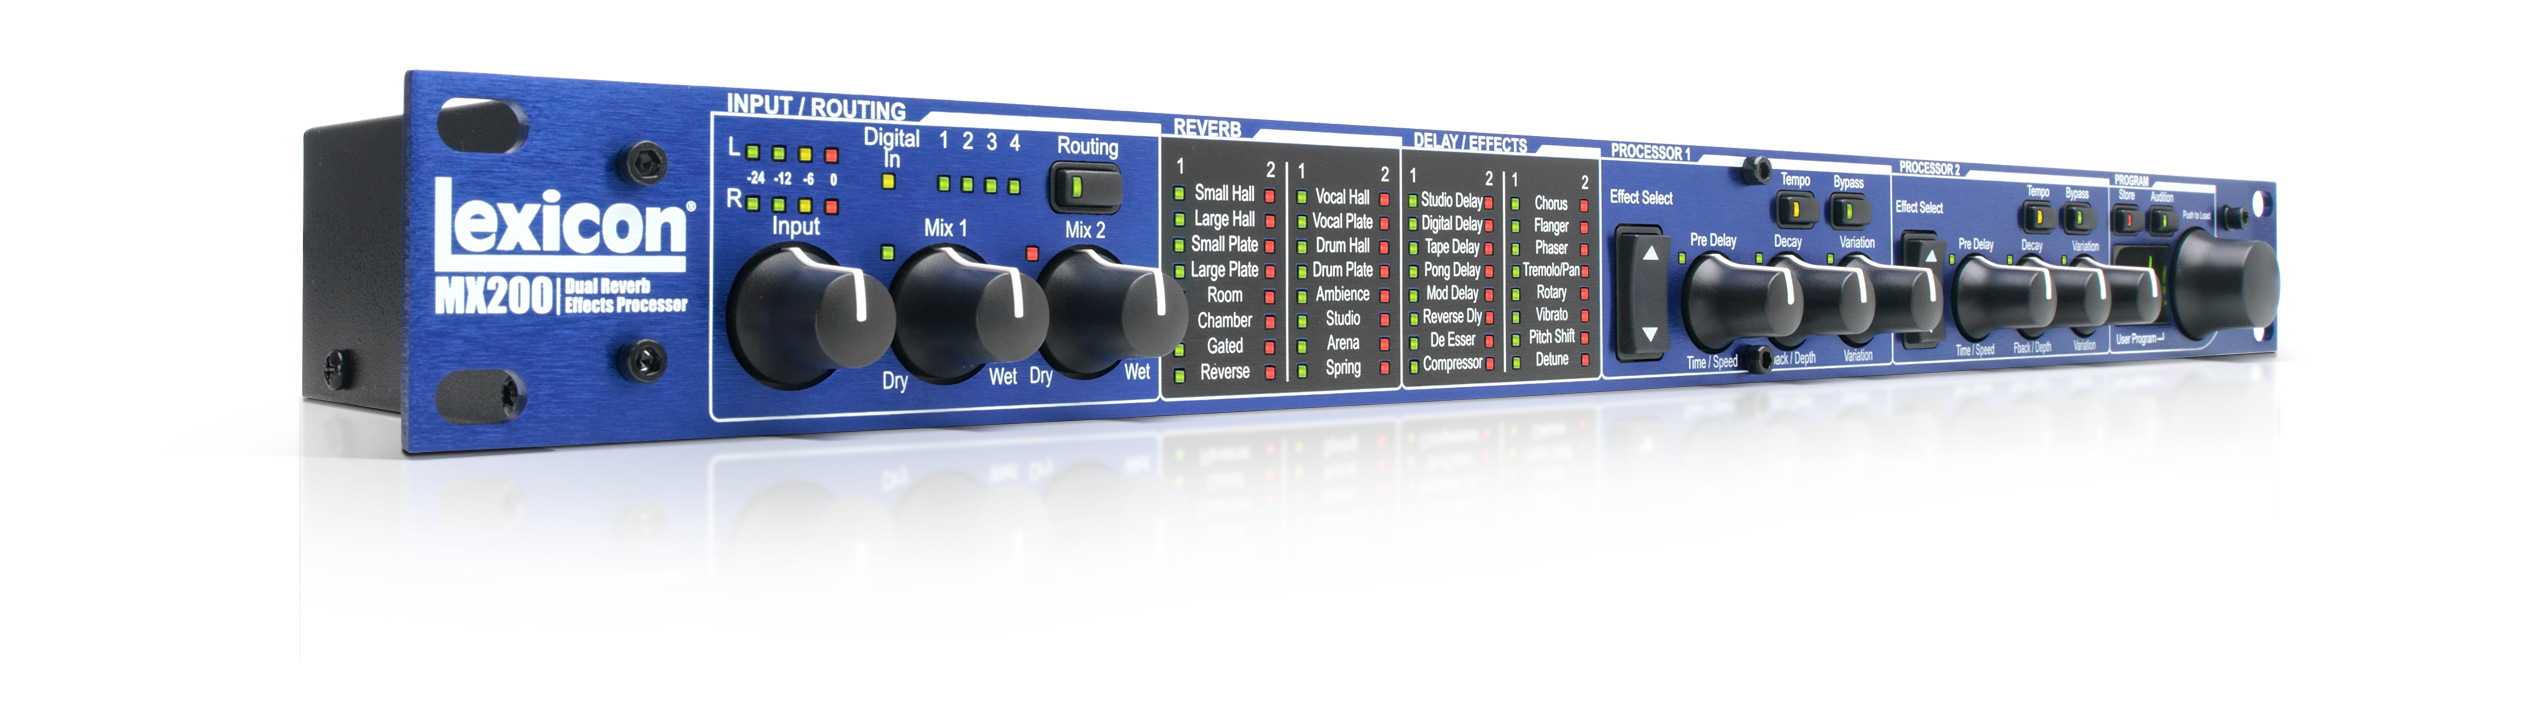 Mx200 lexicon pro legendary reverb and effects  stereo reverb effects processor with usb \